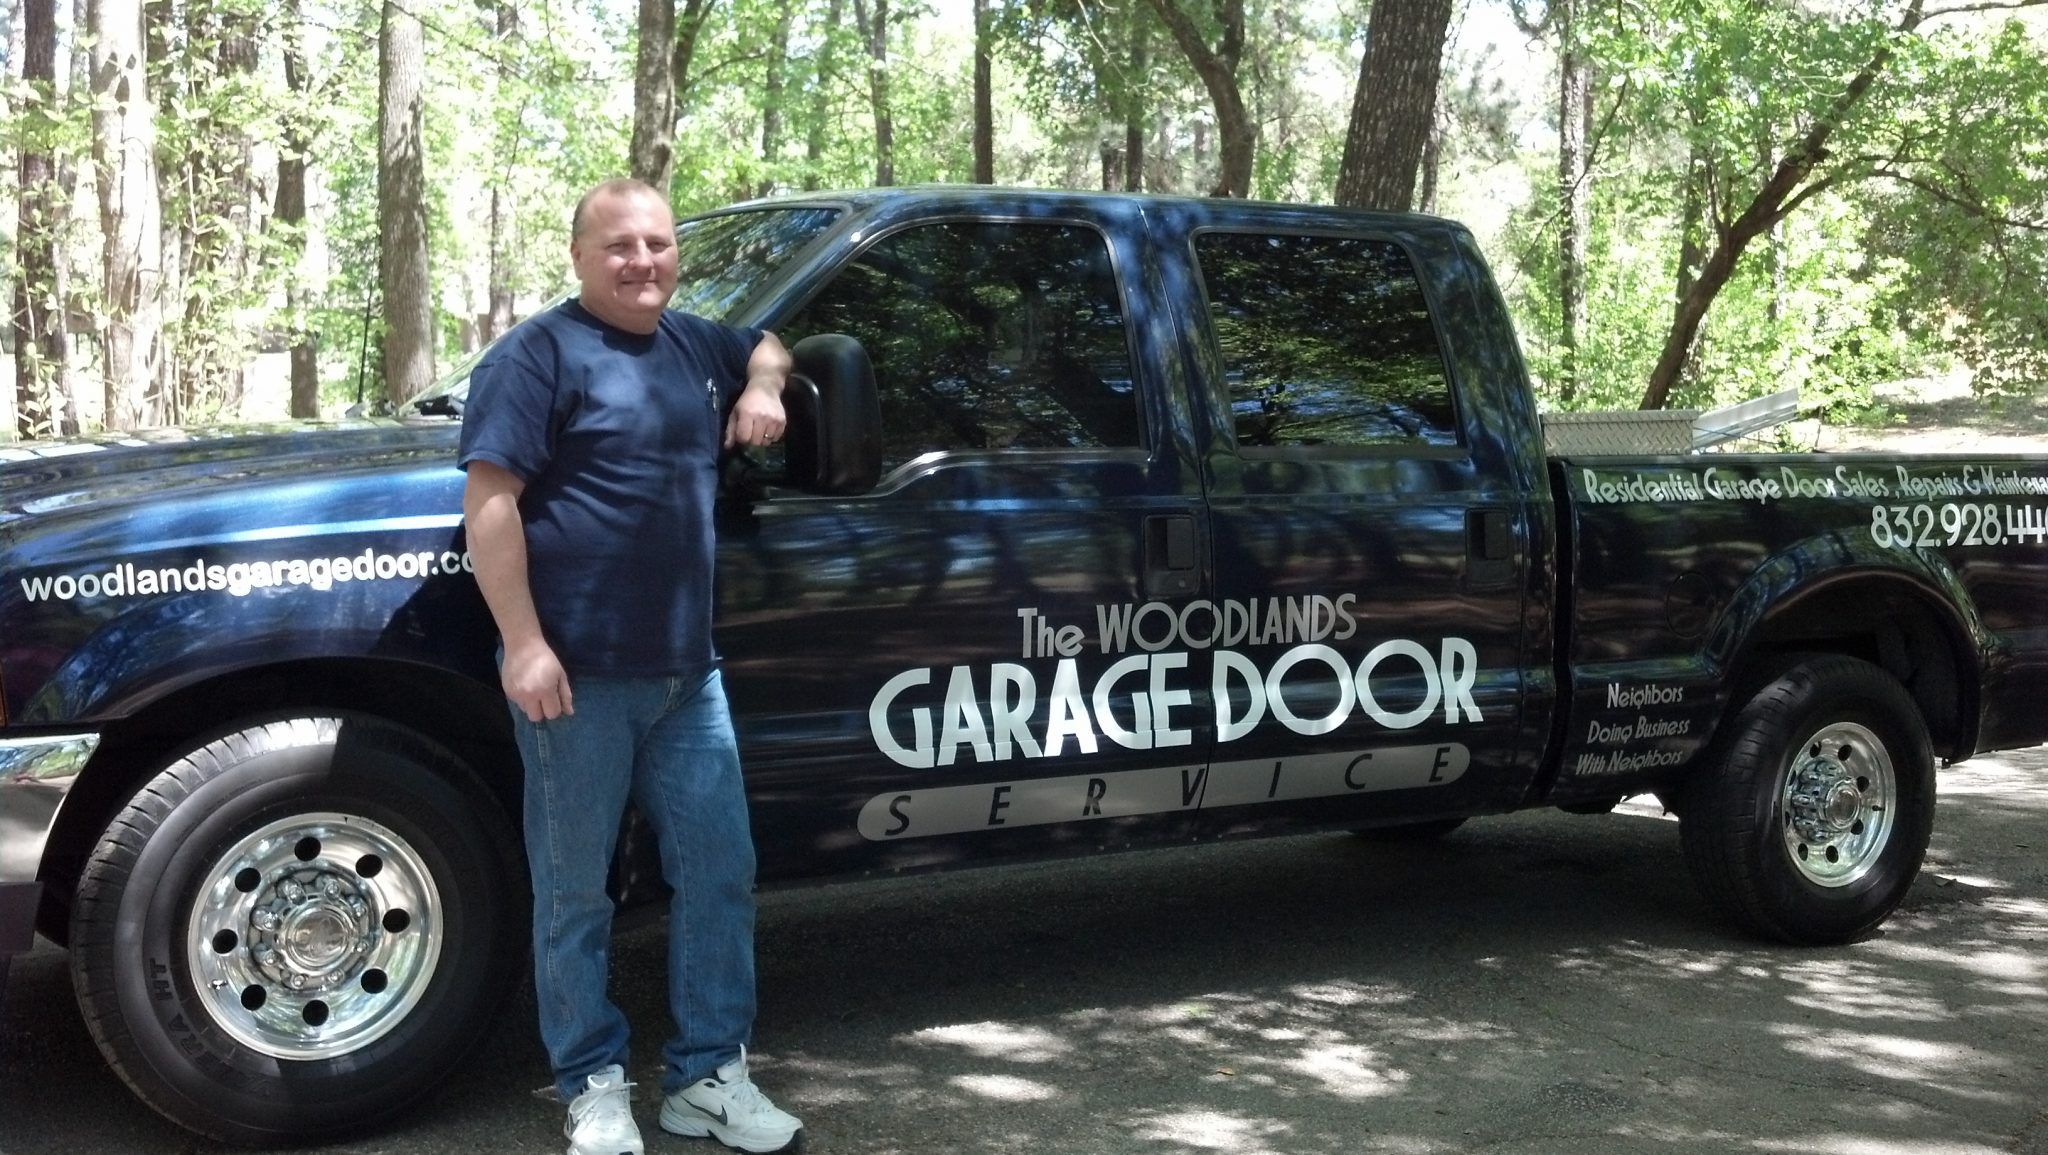 The Woodlands Garage Door Service truck